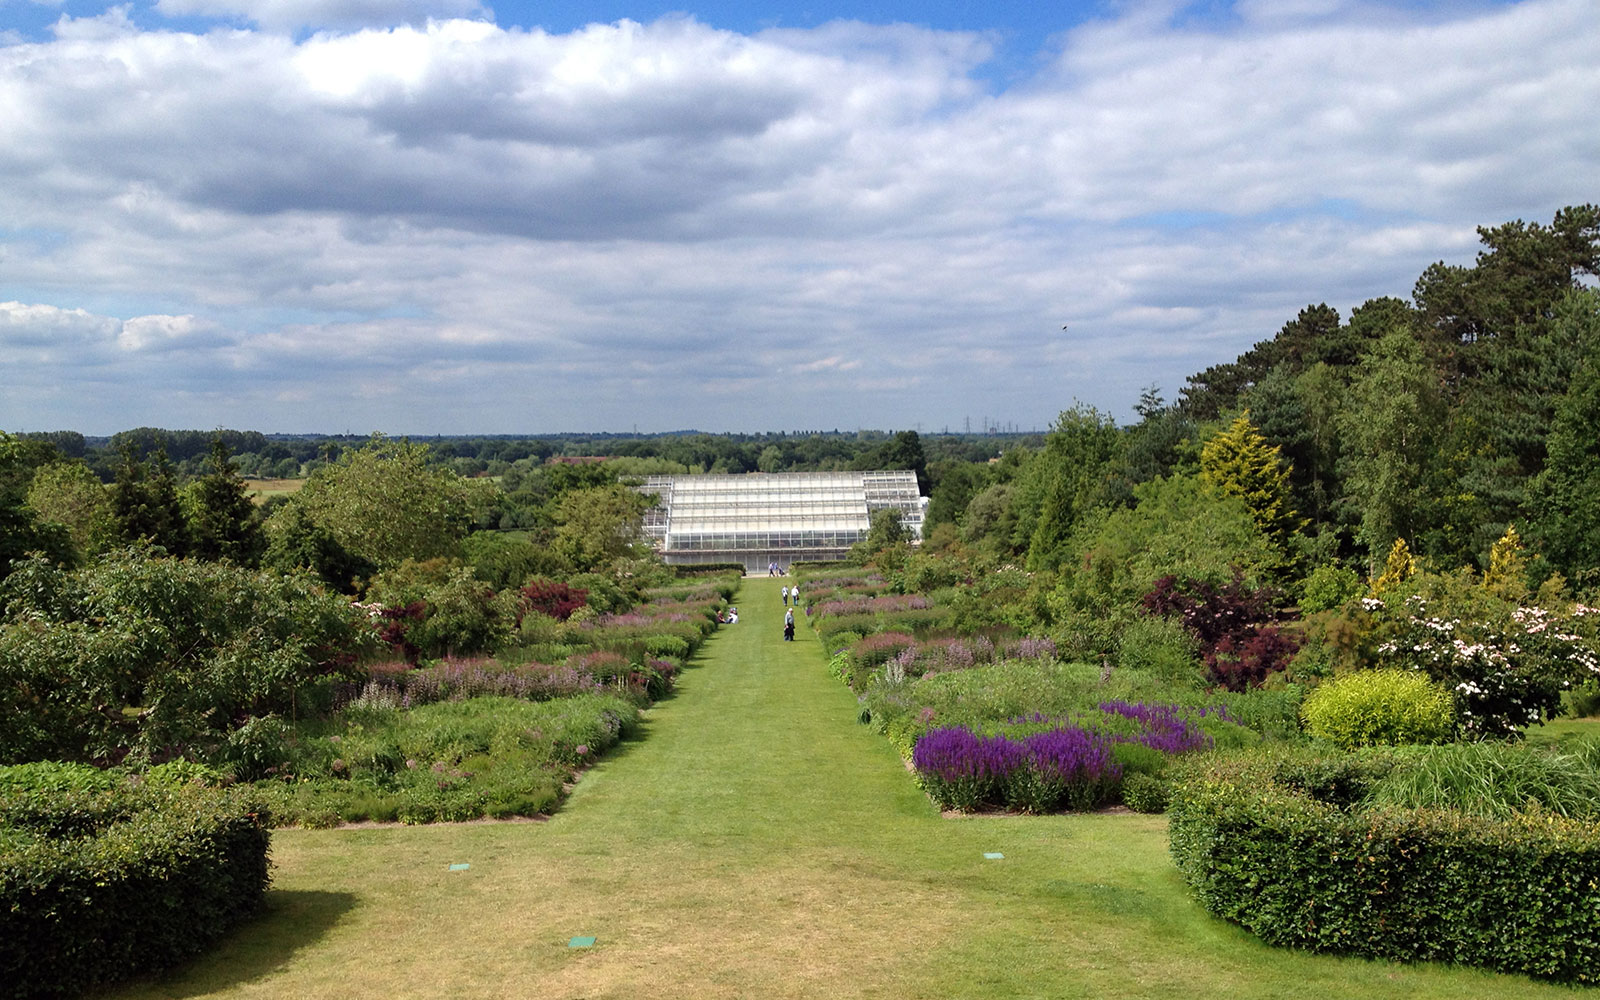 The Royal Horticultural Society's Wisley Garden park